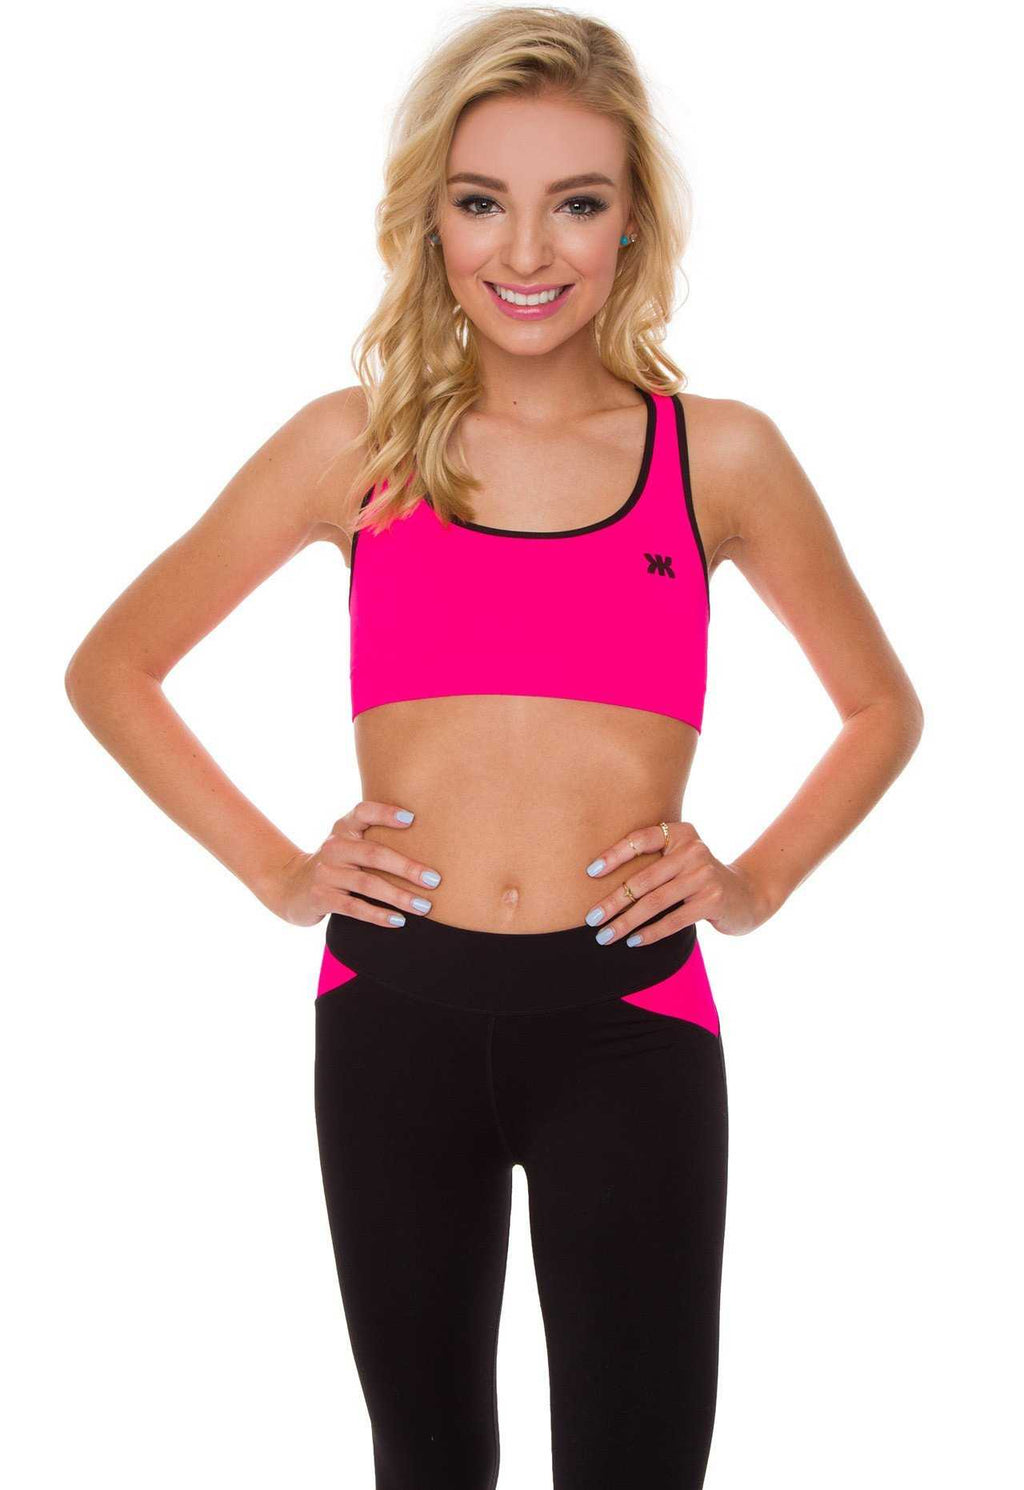 09ec0798eaf35 ... Intimates - Never Giving Up Sports Bra In Pink ...